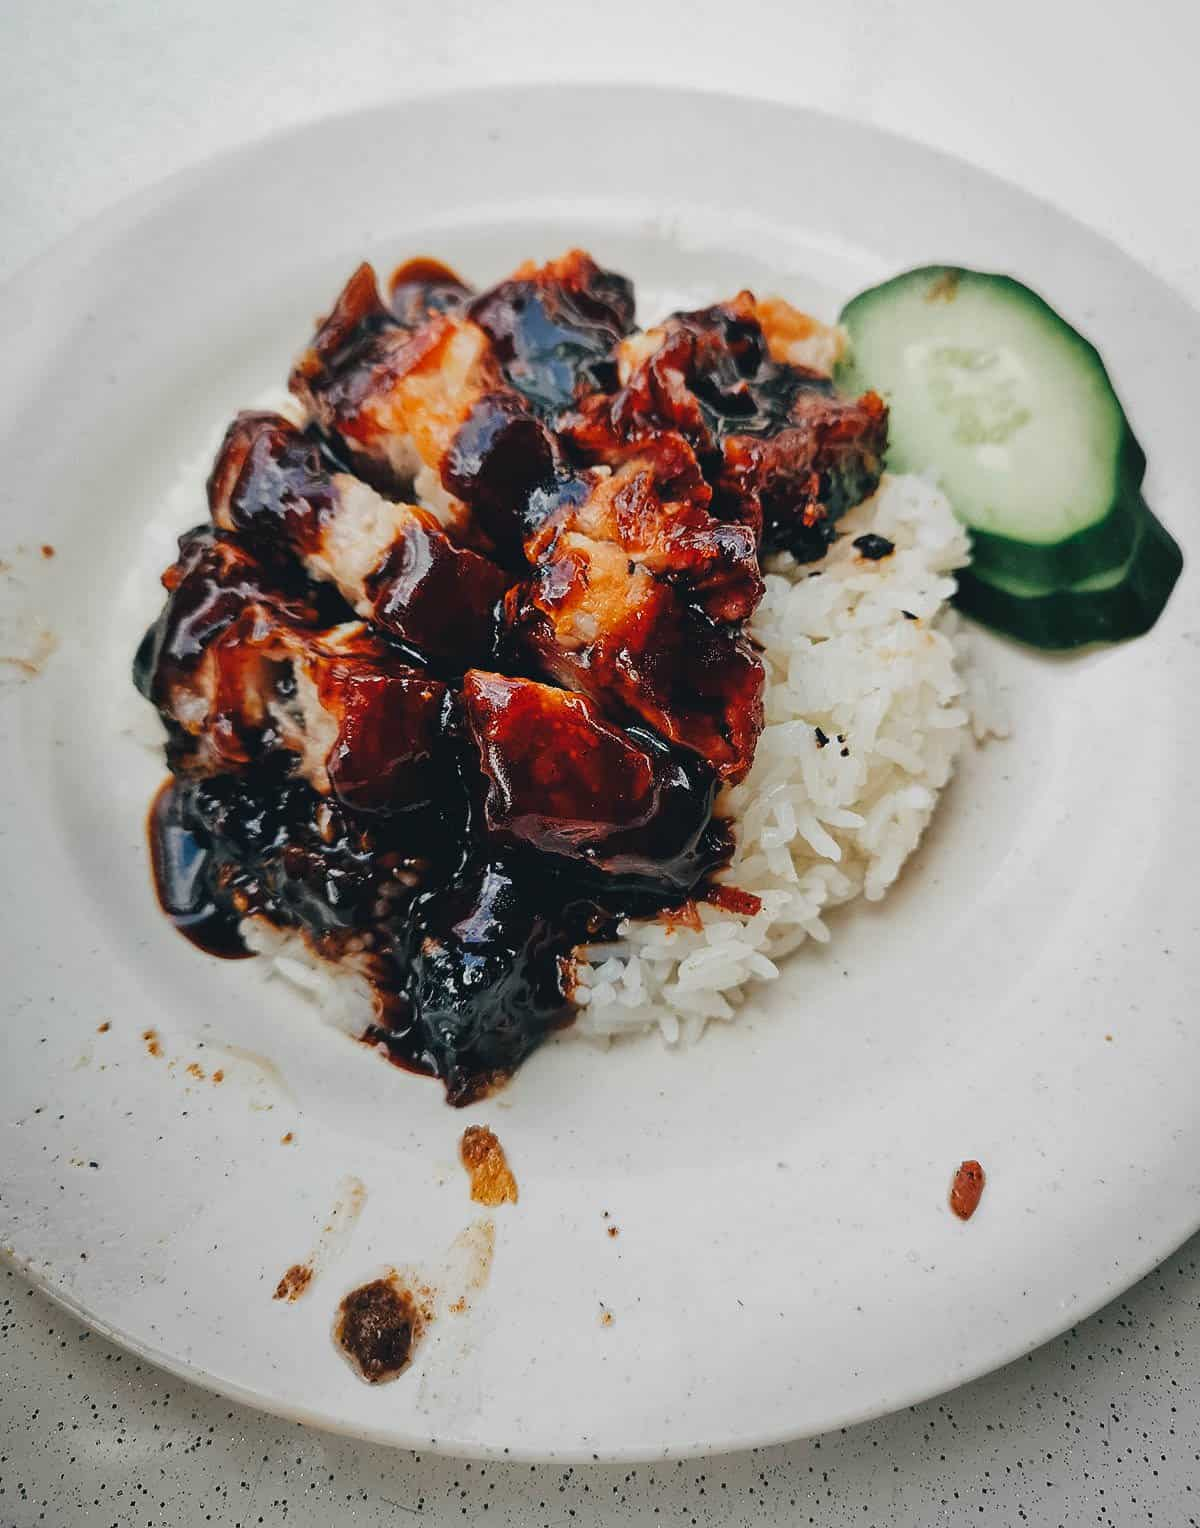 Plate of char siew rice